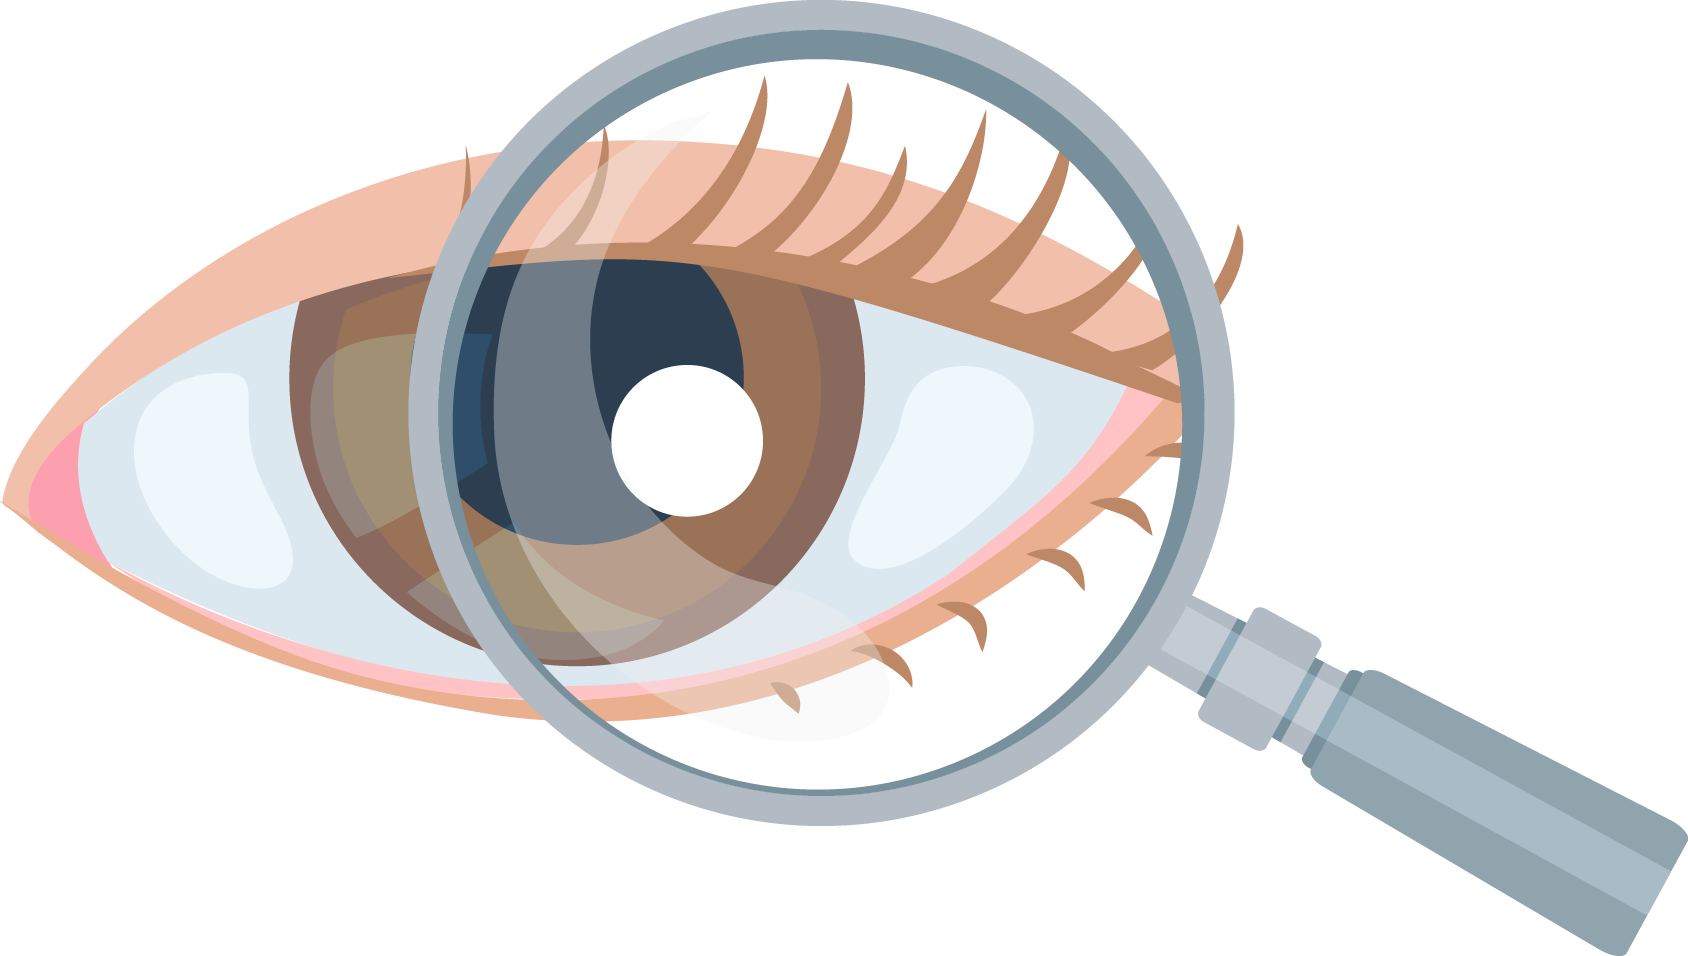 Clipart eye magnifying glass. Ophthalmology on glasses